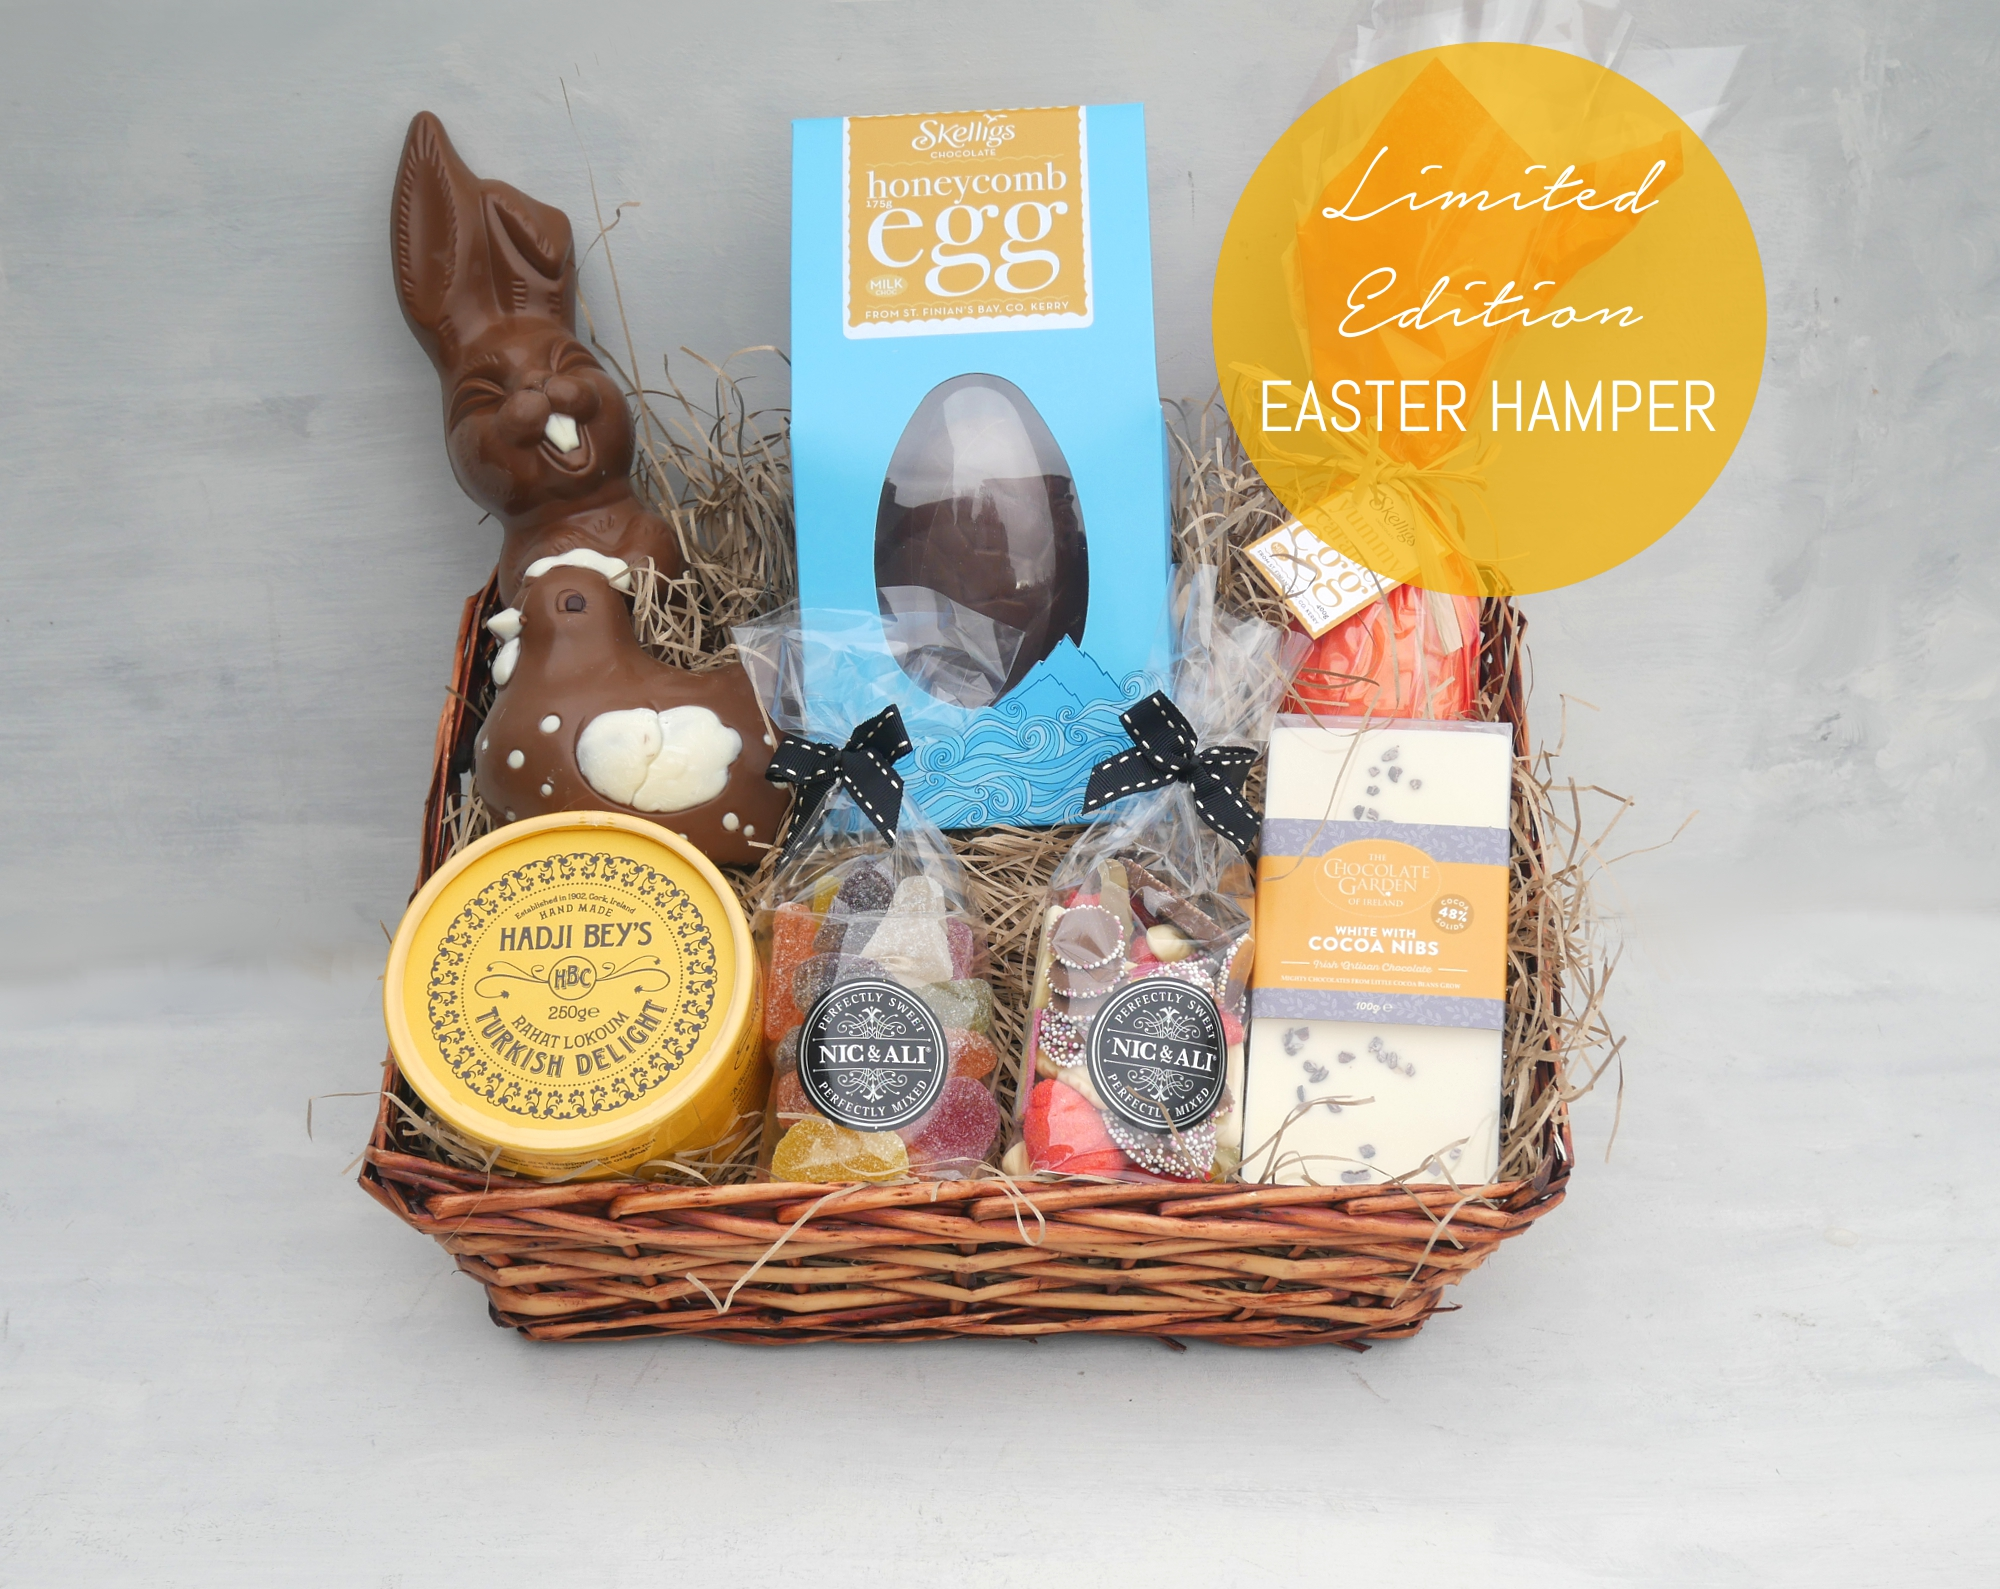 The mortons easter hamper limited edition the mortons easter hamper limited edition negle Image collections